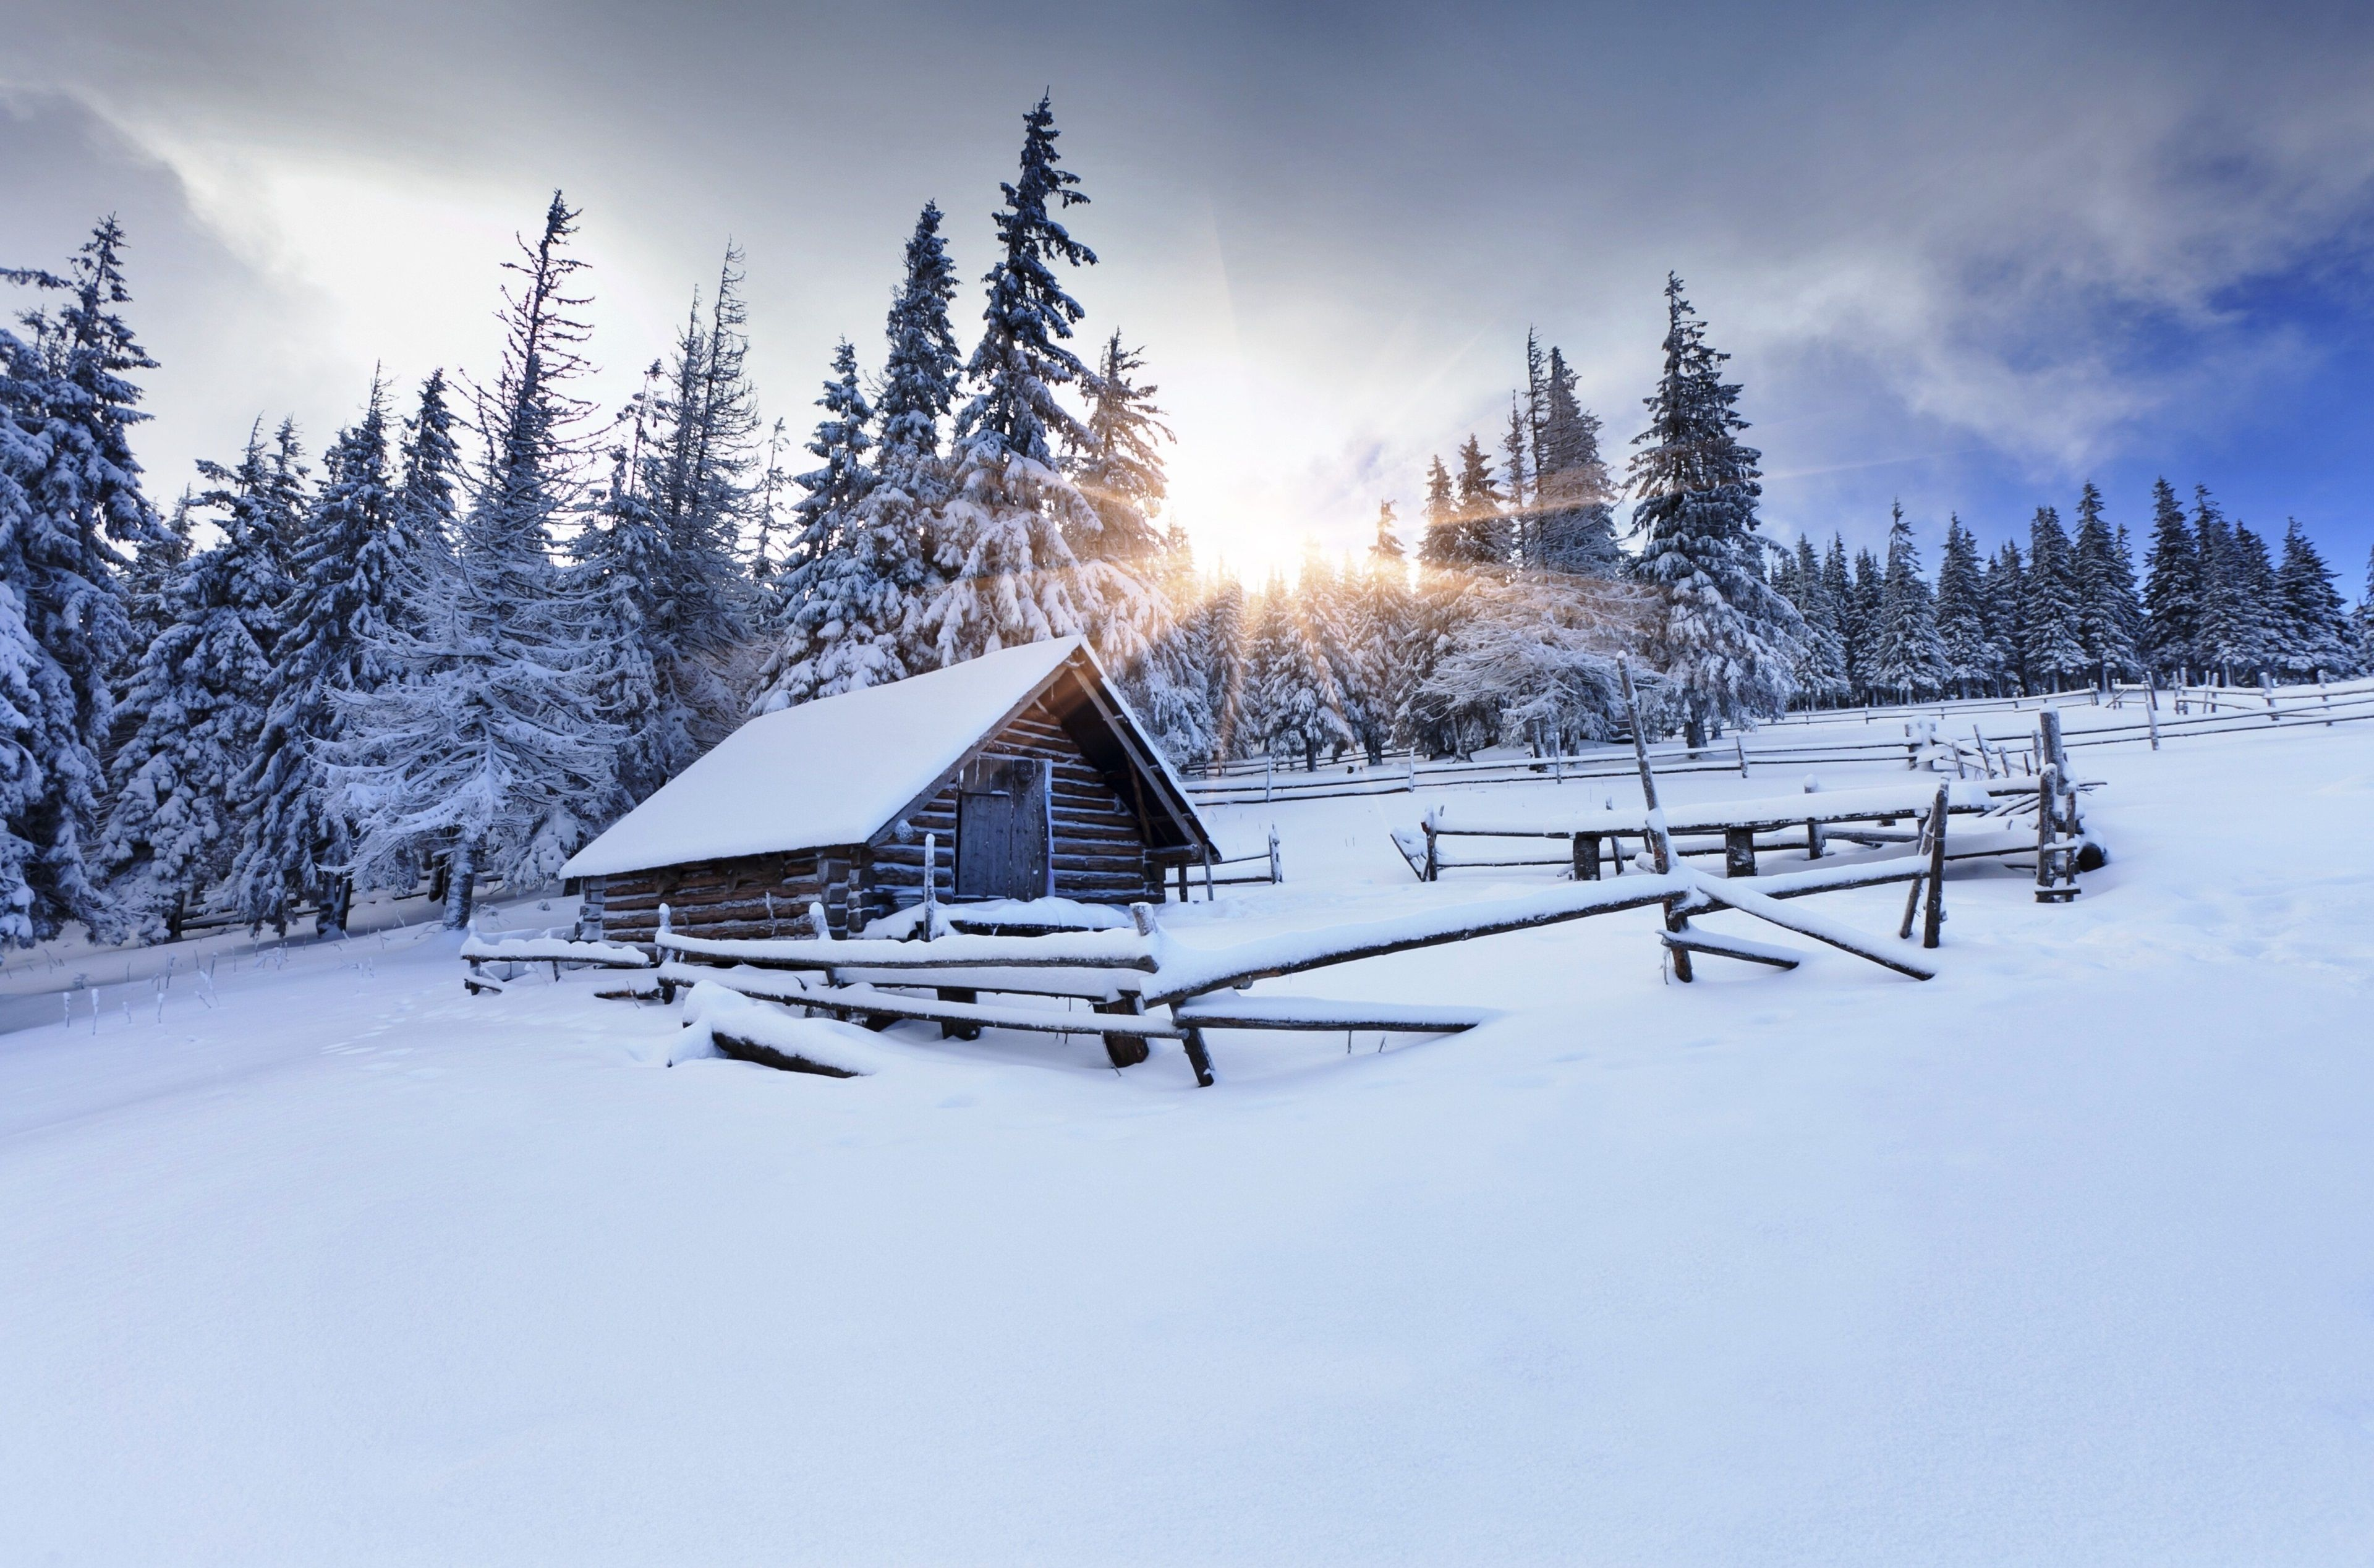 3840x2537 Winter Forest 4k Hd Image For Wallpaper